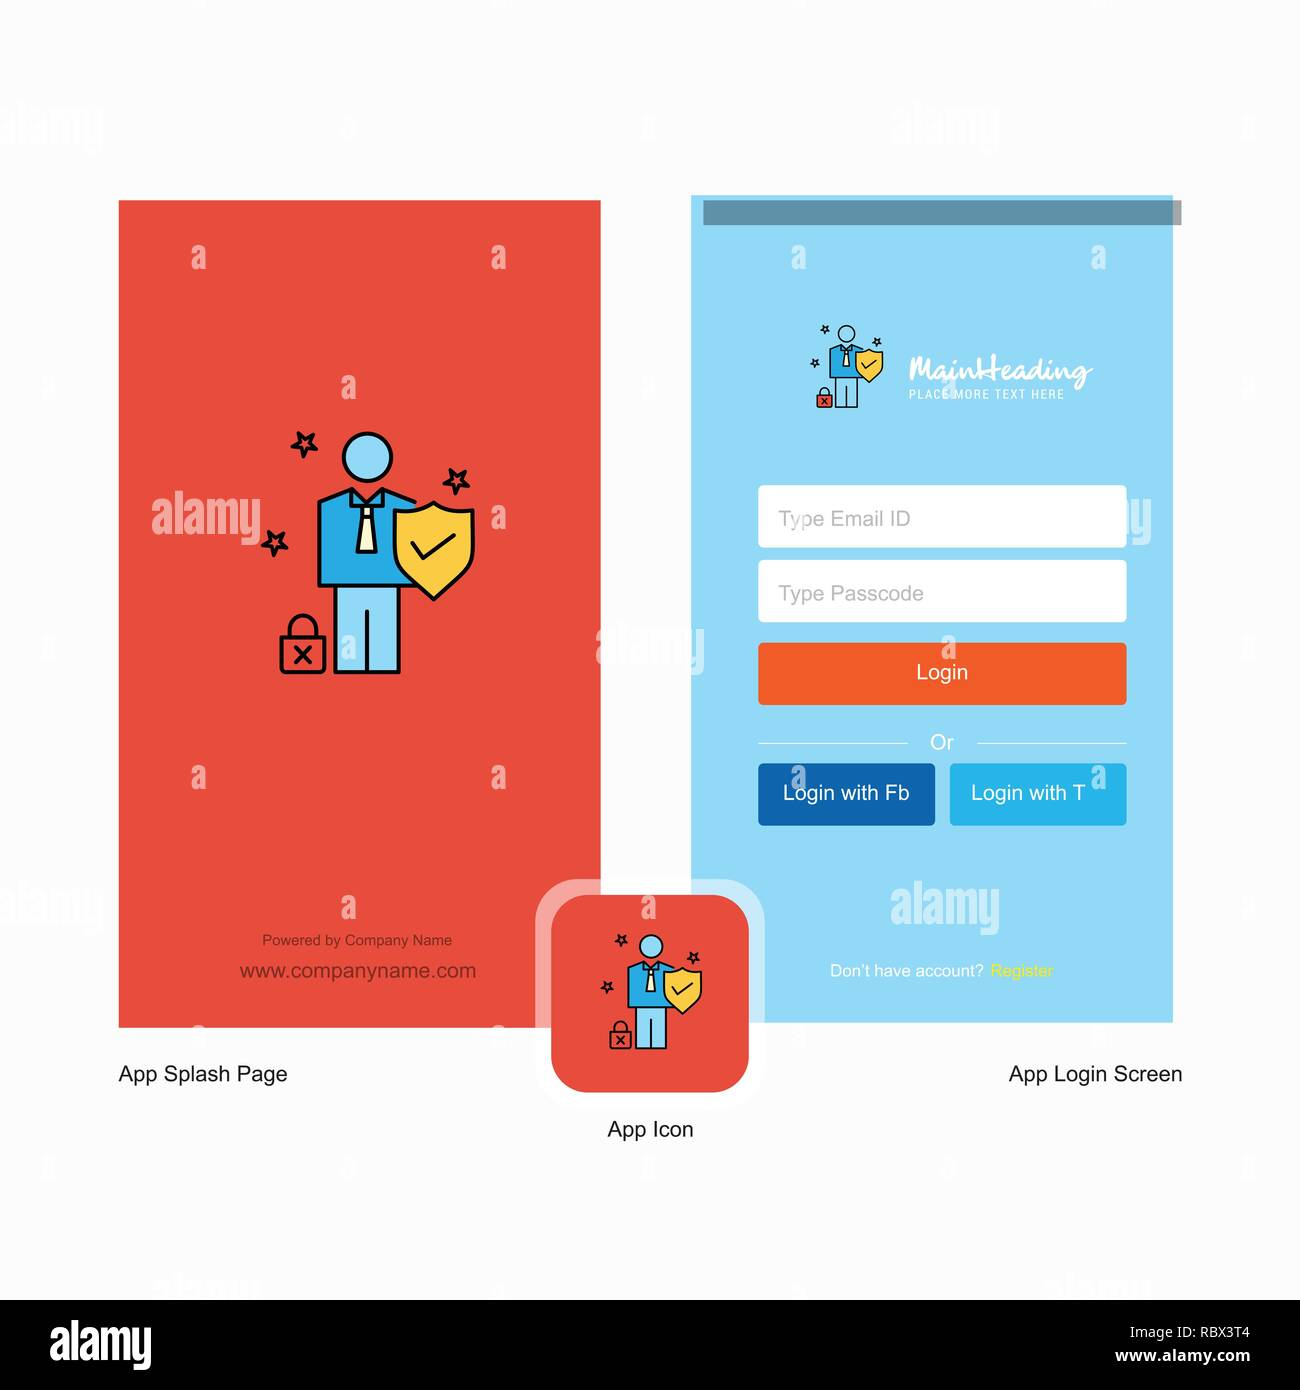 Company Employee Splash Screen and Login Page design with